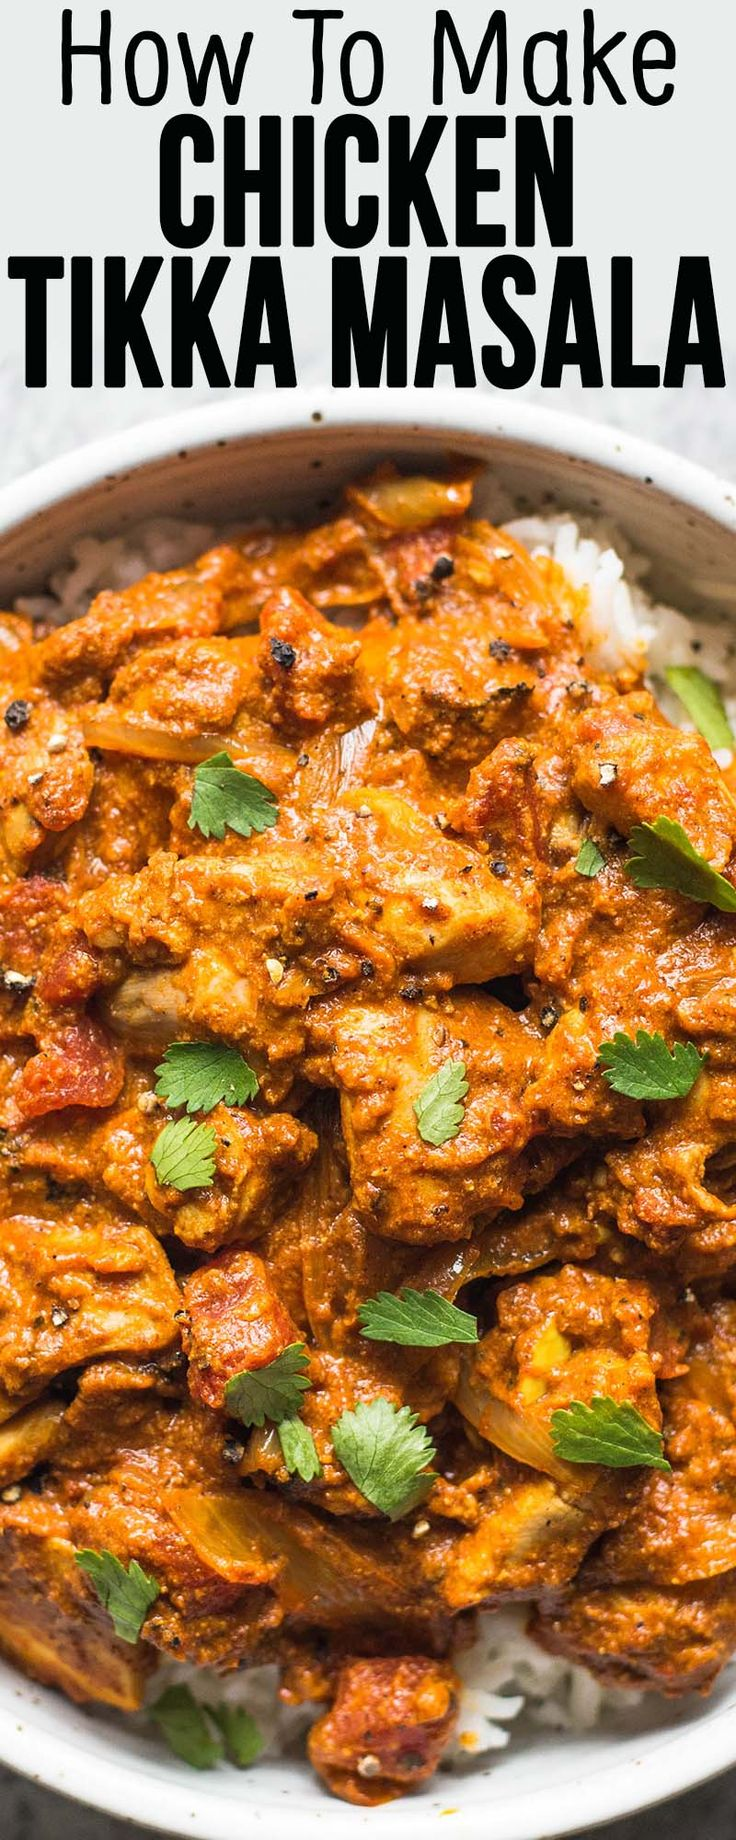 Chicken Tikka Masala! Very EASY to make on the stovetop. Just like take-out! Ready in 30 minutes, plus marinating time.